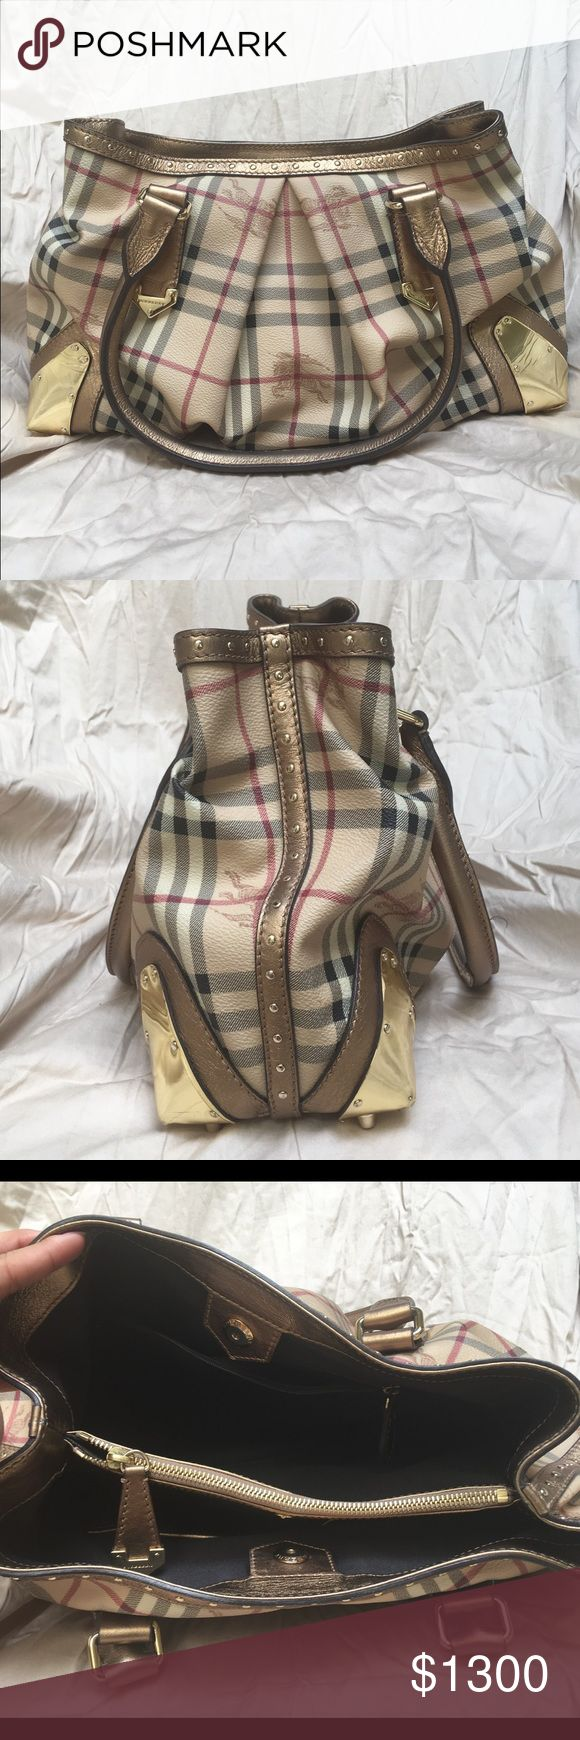 AUTHENTIC Burberry Purse 100% Authentic Burberry Purse with gold accents. Lightly used, No stains or marks. No trades. Burberry Bags